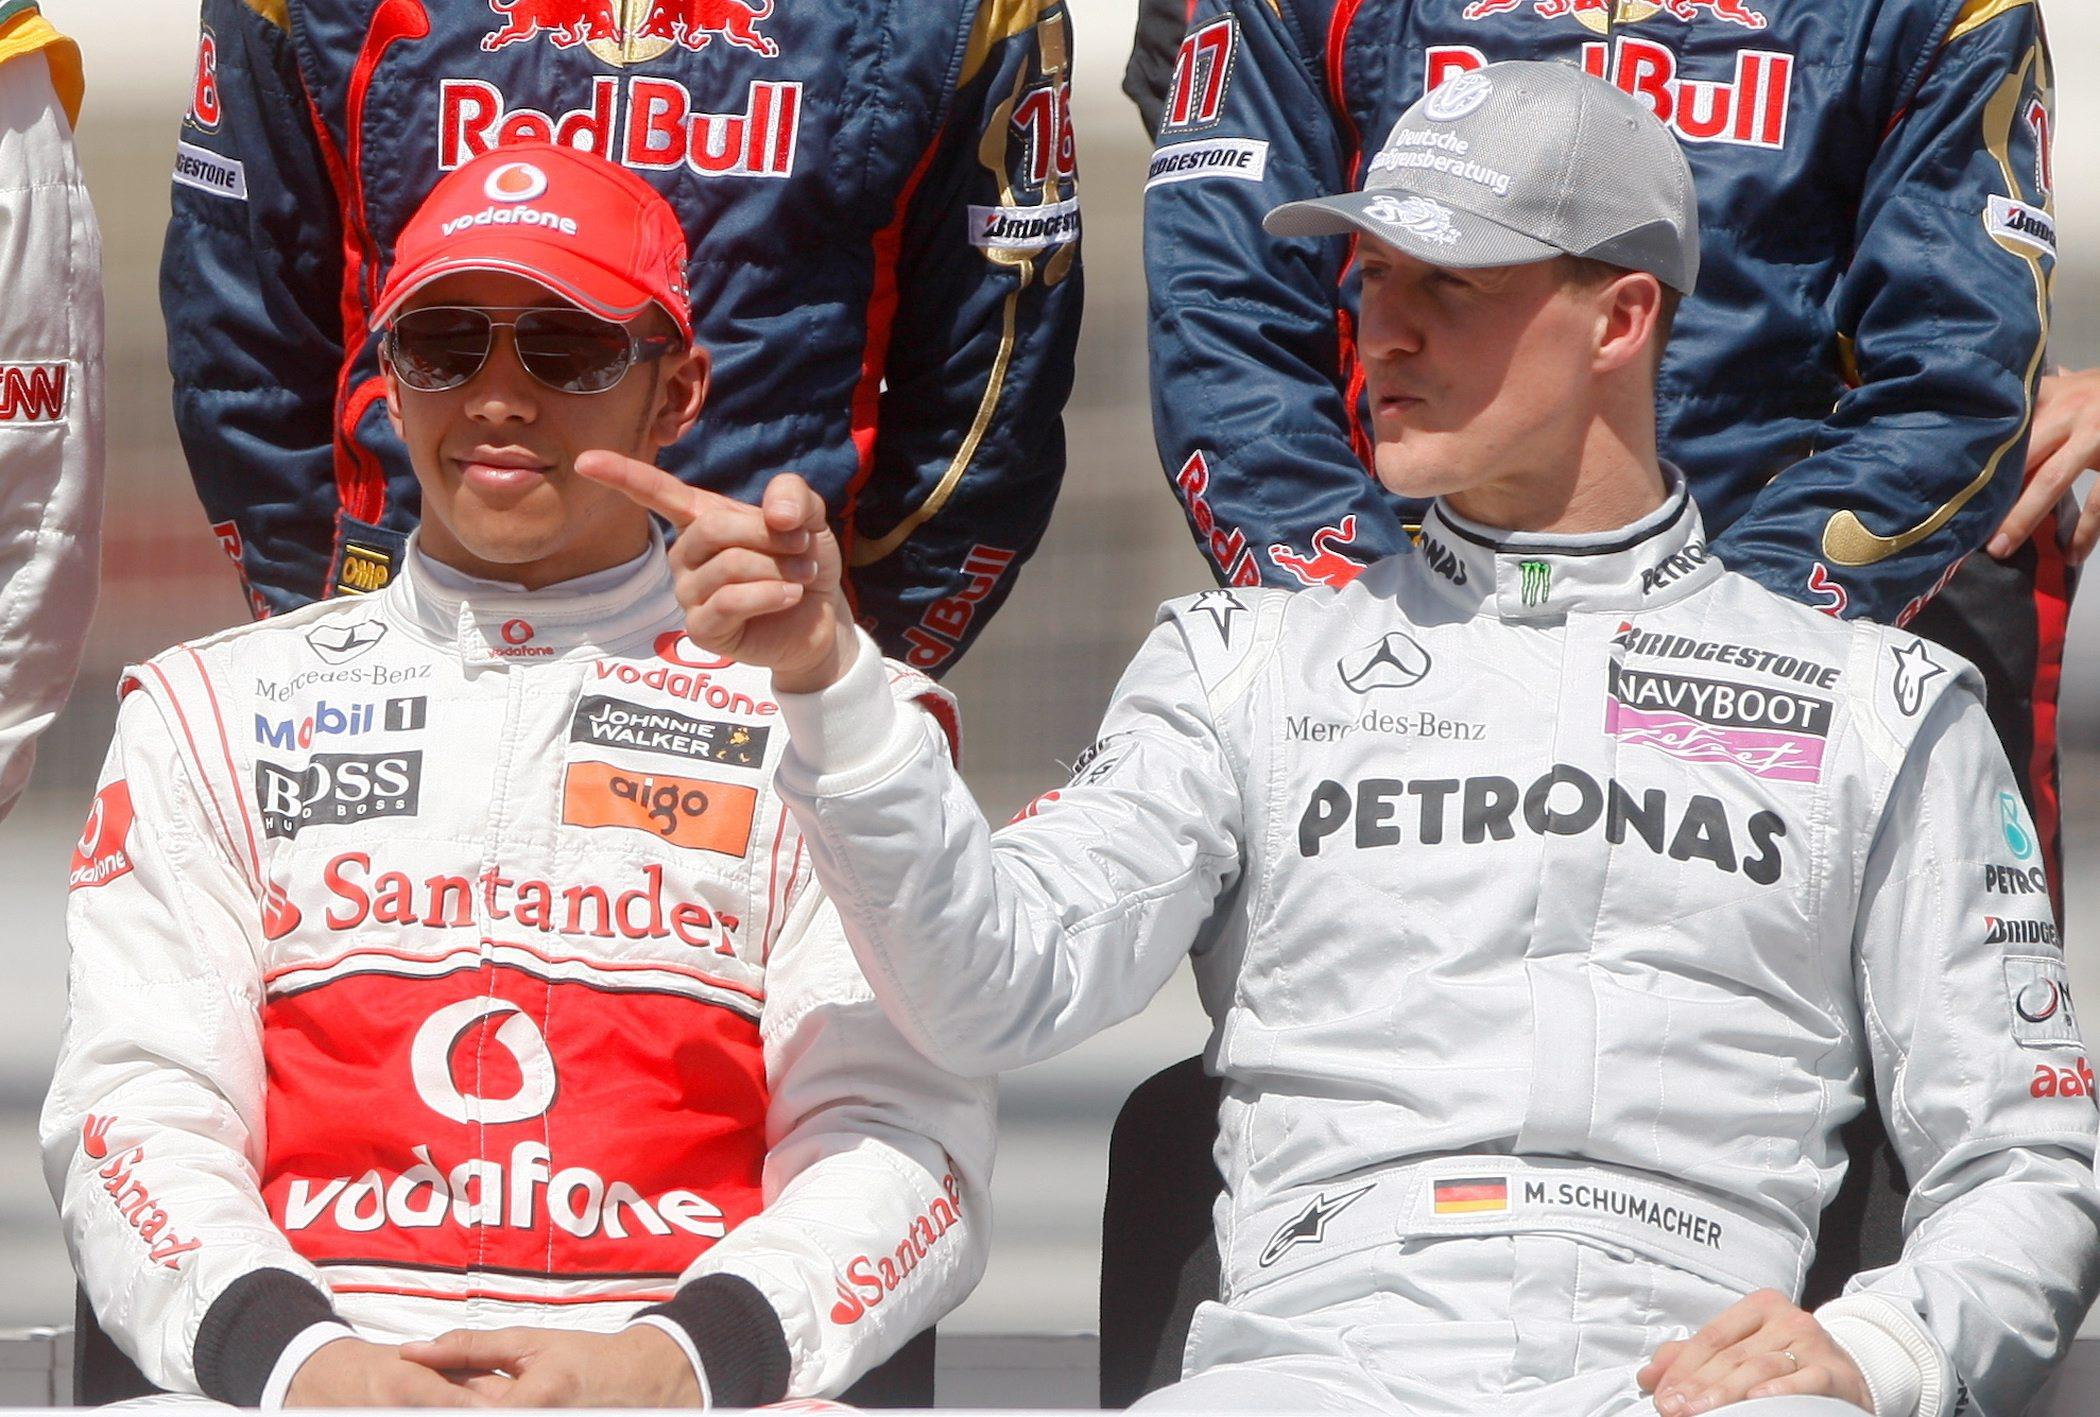 Lewis Hamiton led tributes to Michael Schumacher on his 50th birthday as the legendary F1 driver continues his rehab following a skiing accident from 2013